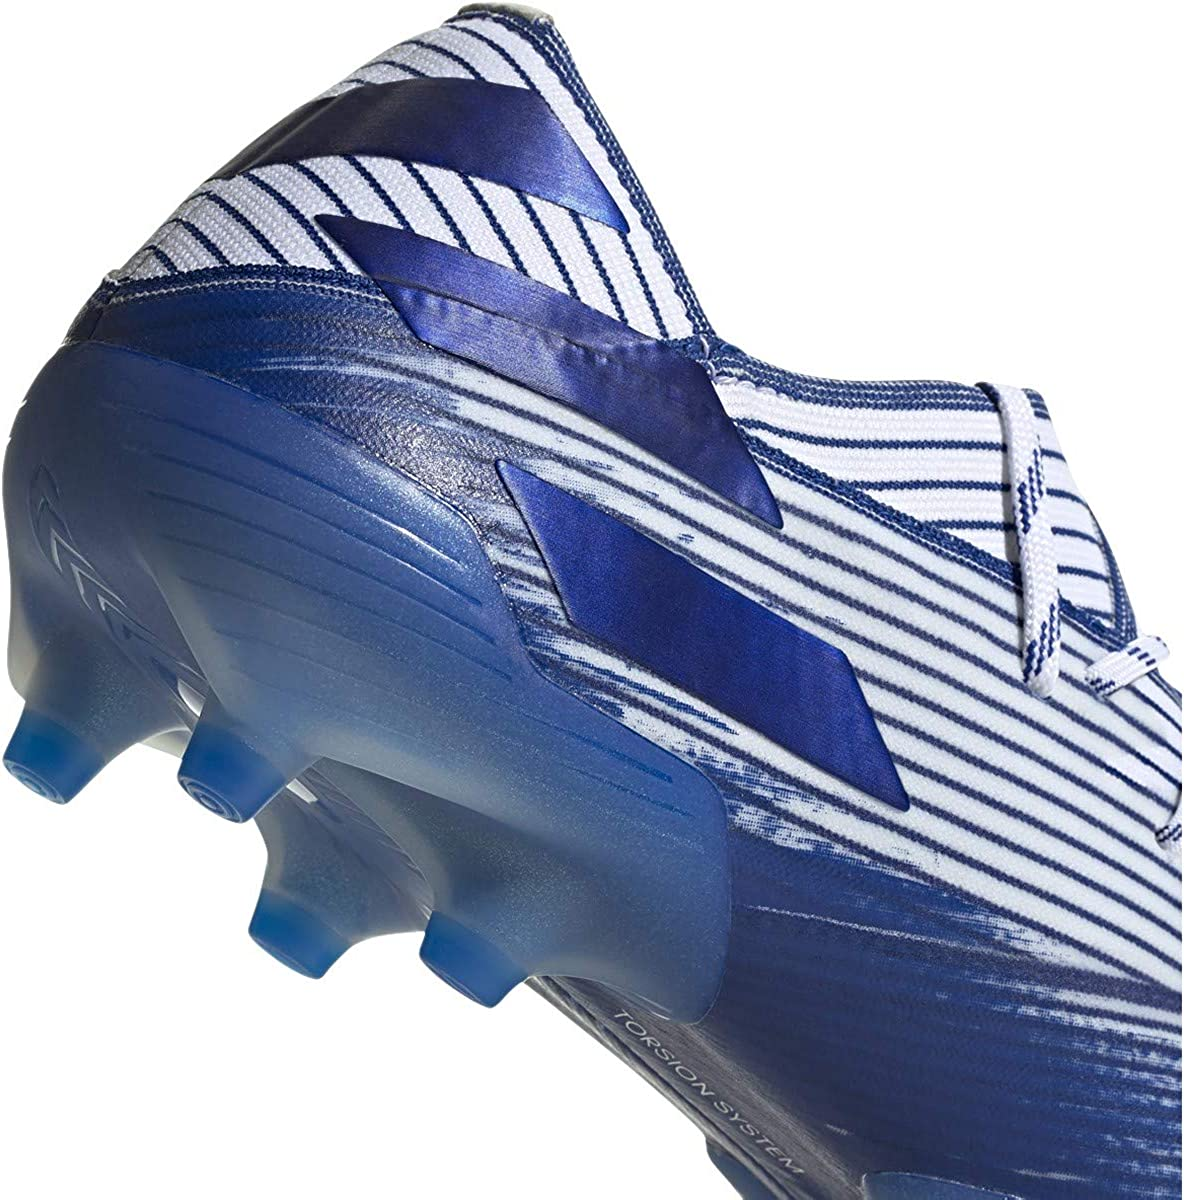 XE73-08 1//6 Scale ZCWO Male Football Boots Soccer Shoes hole for ankle connector